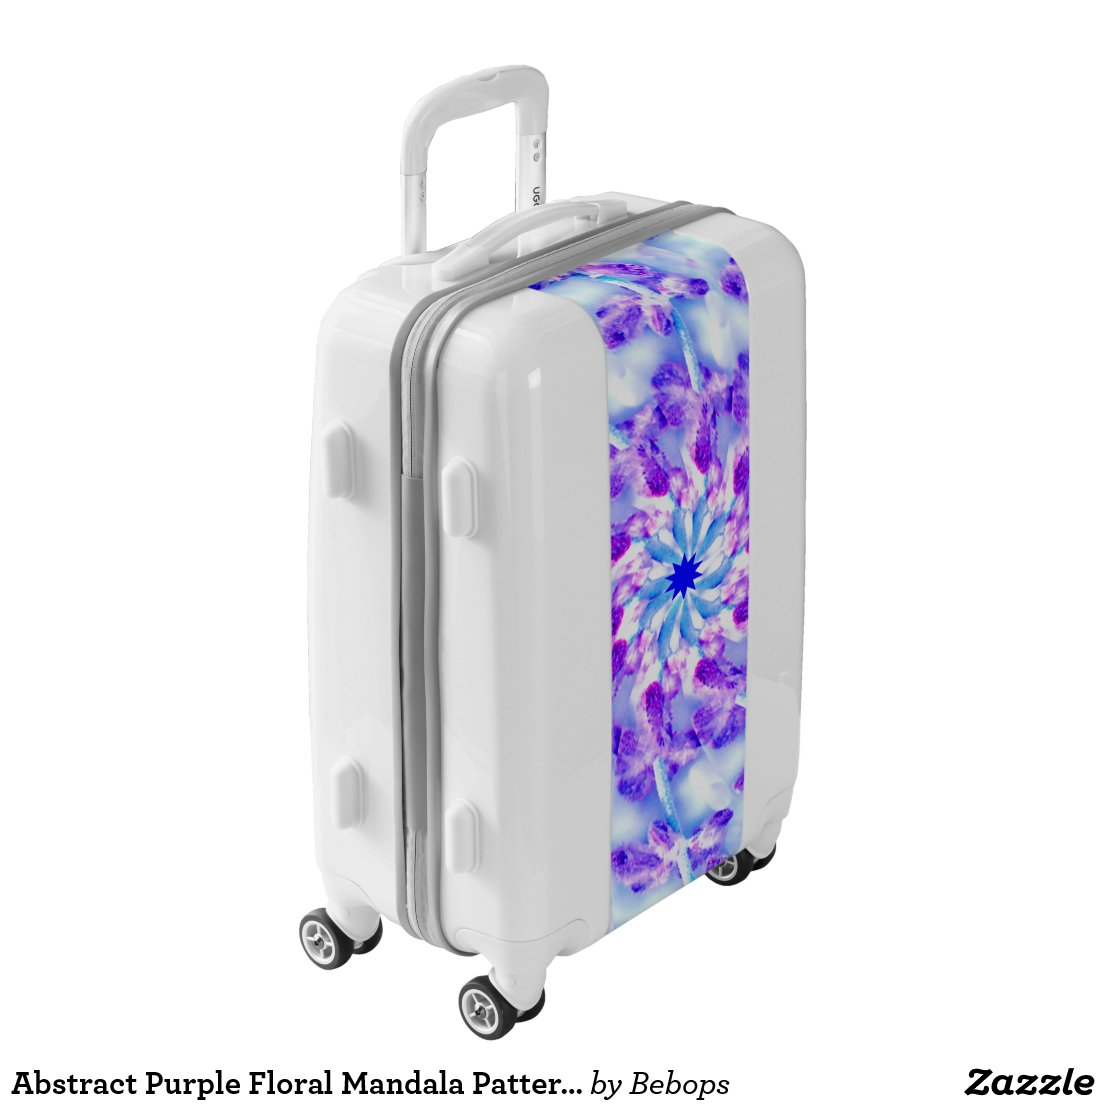 Abstract Purple Floral Mandala Pattern Luggage